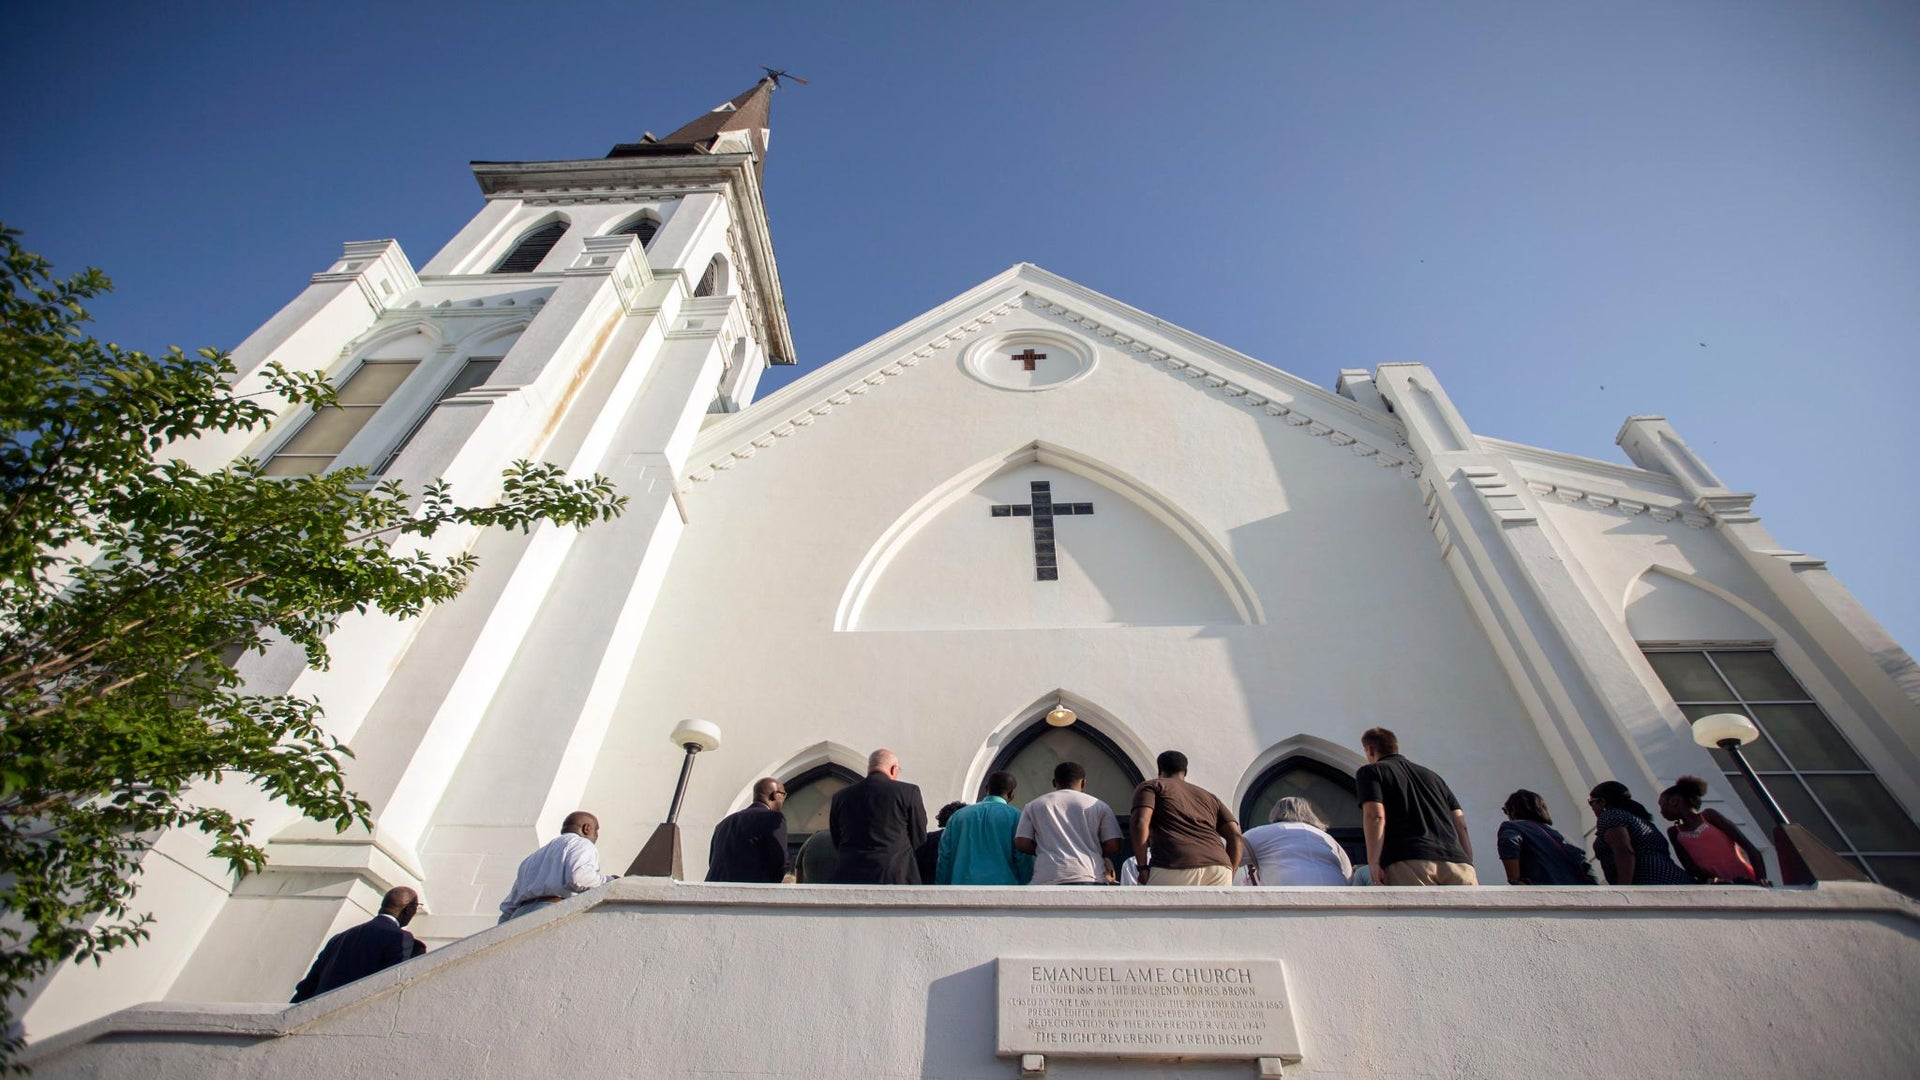 Seven Months After Shooting, Charleston's Emanuel AME Church Appoints New Pastor